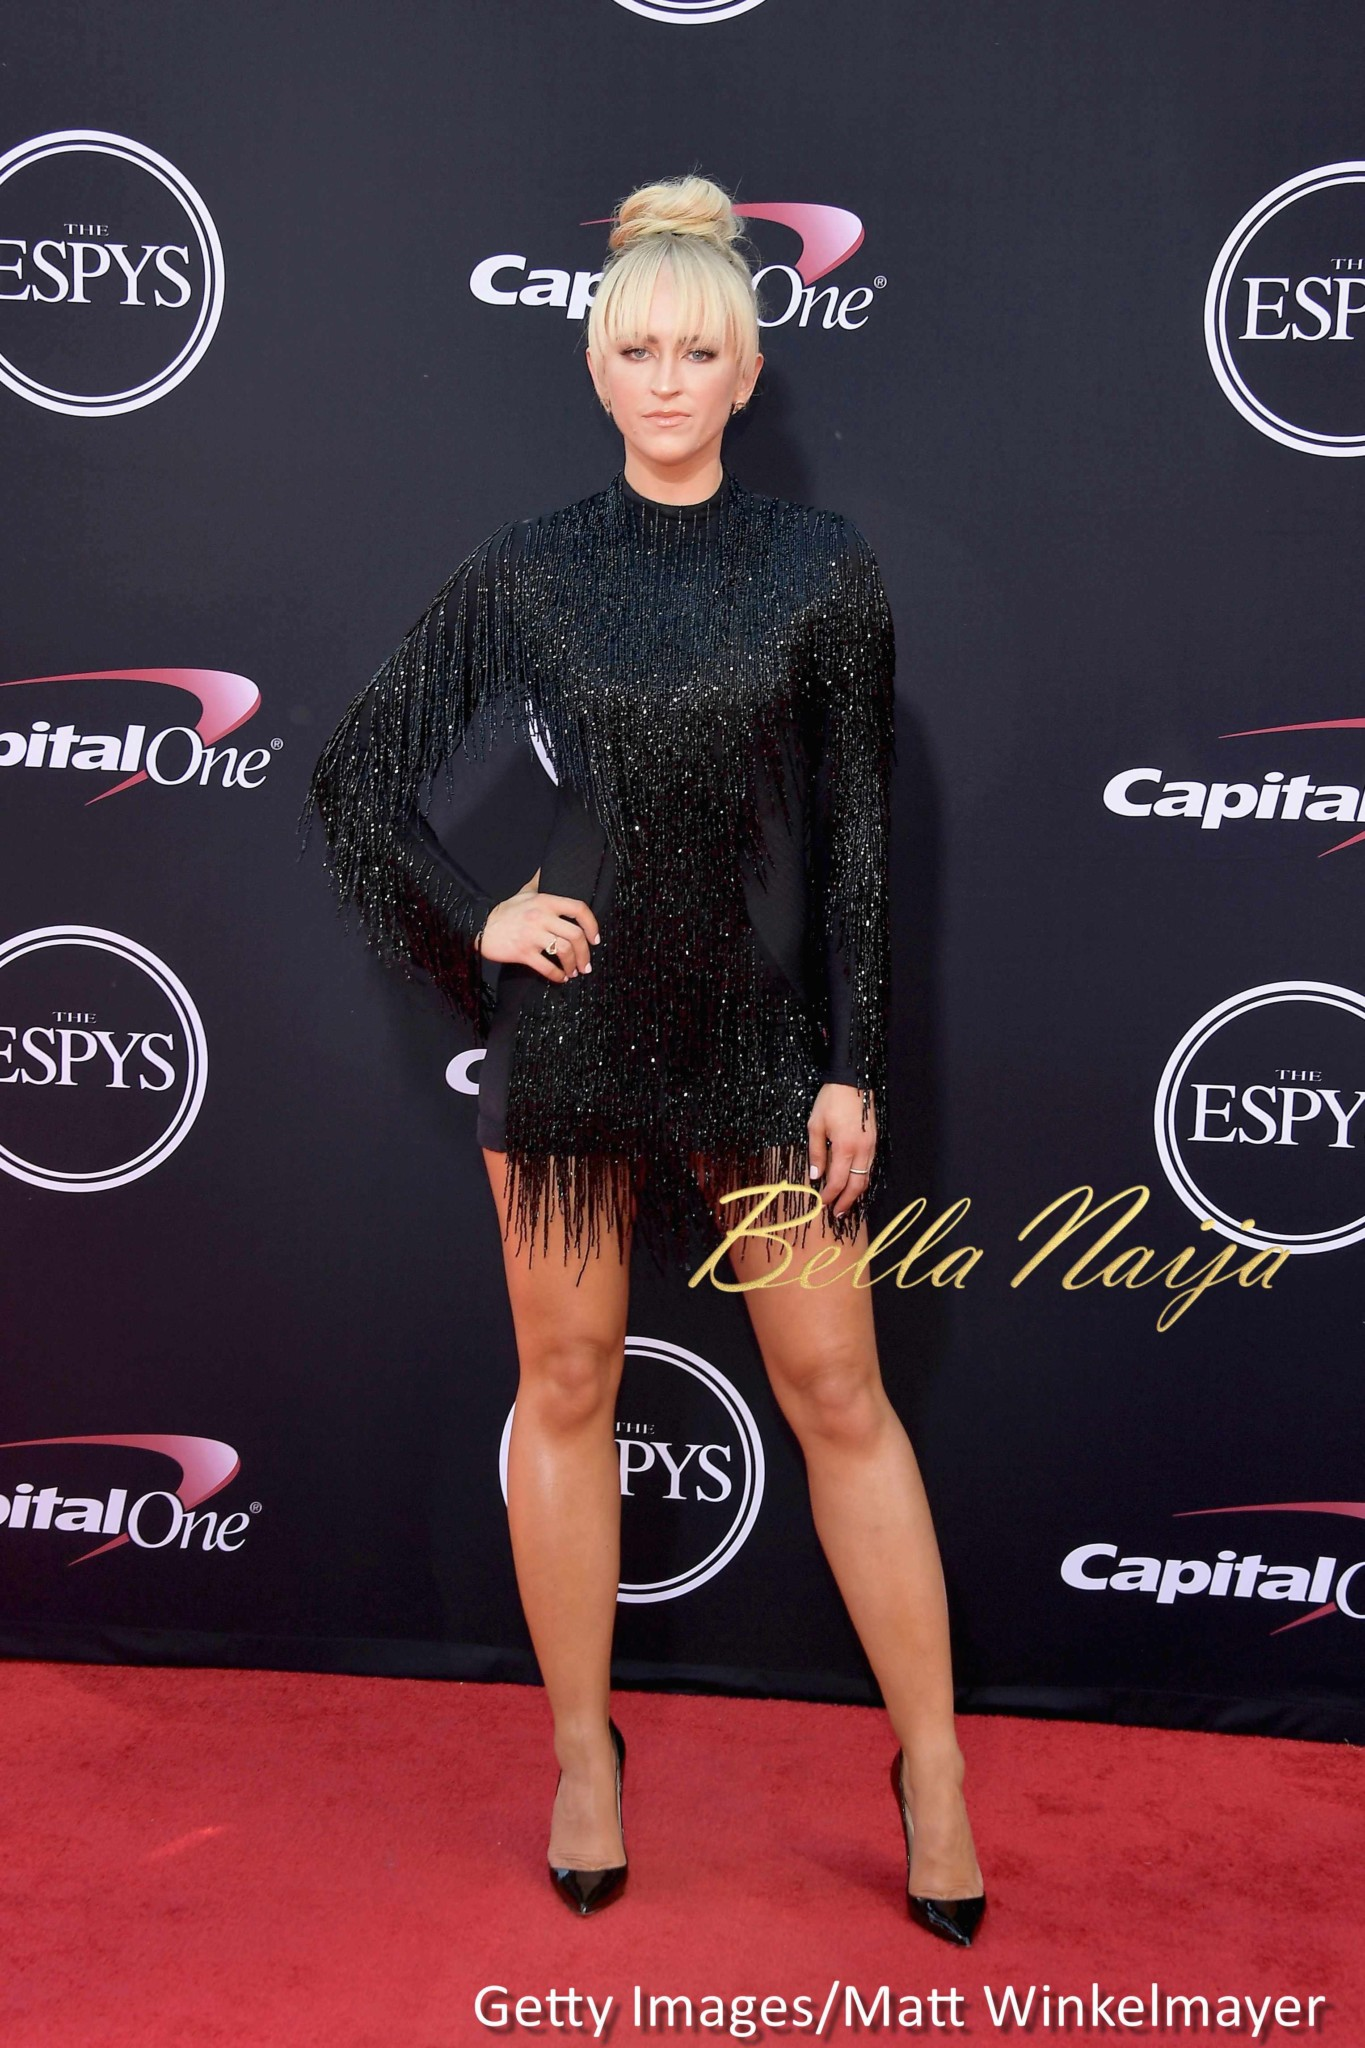 BellaNaija - Michael Phelps, John Cena, Laurie Hernandez... Photos from The ESPY Awards 2017